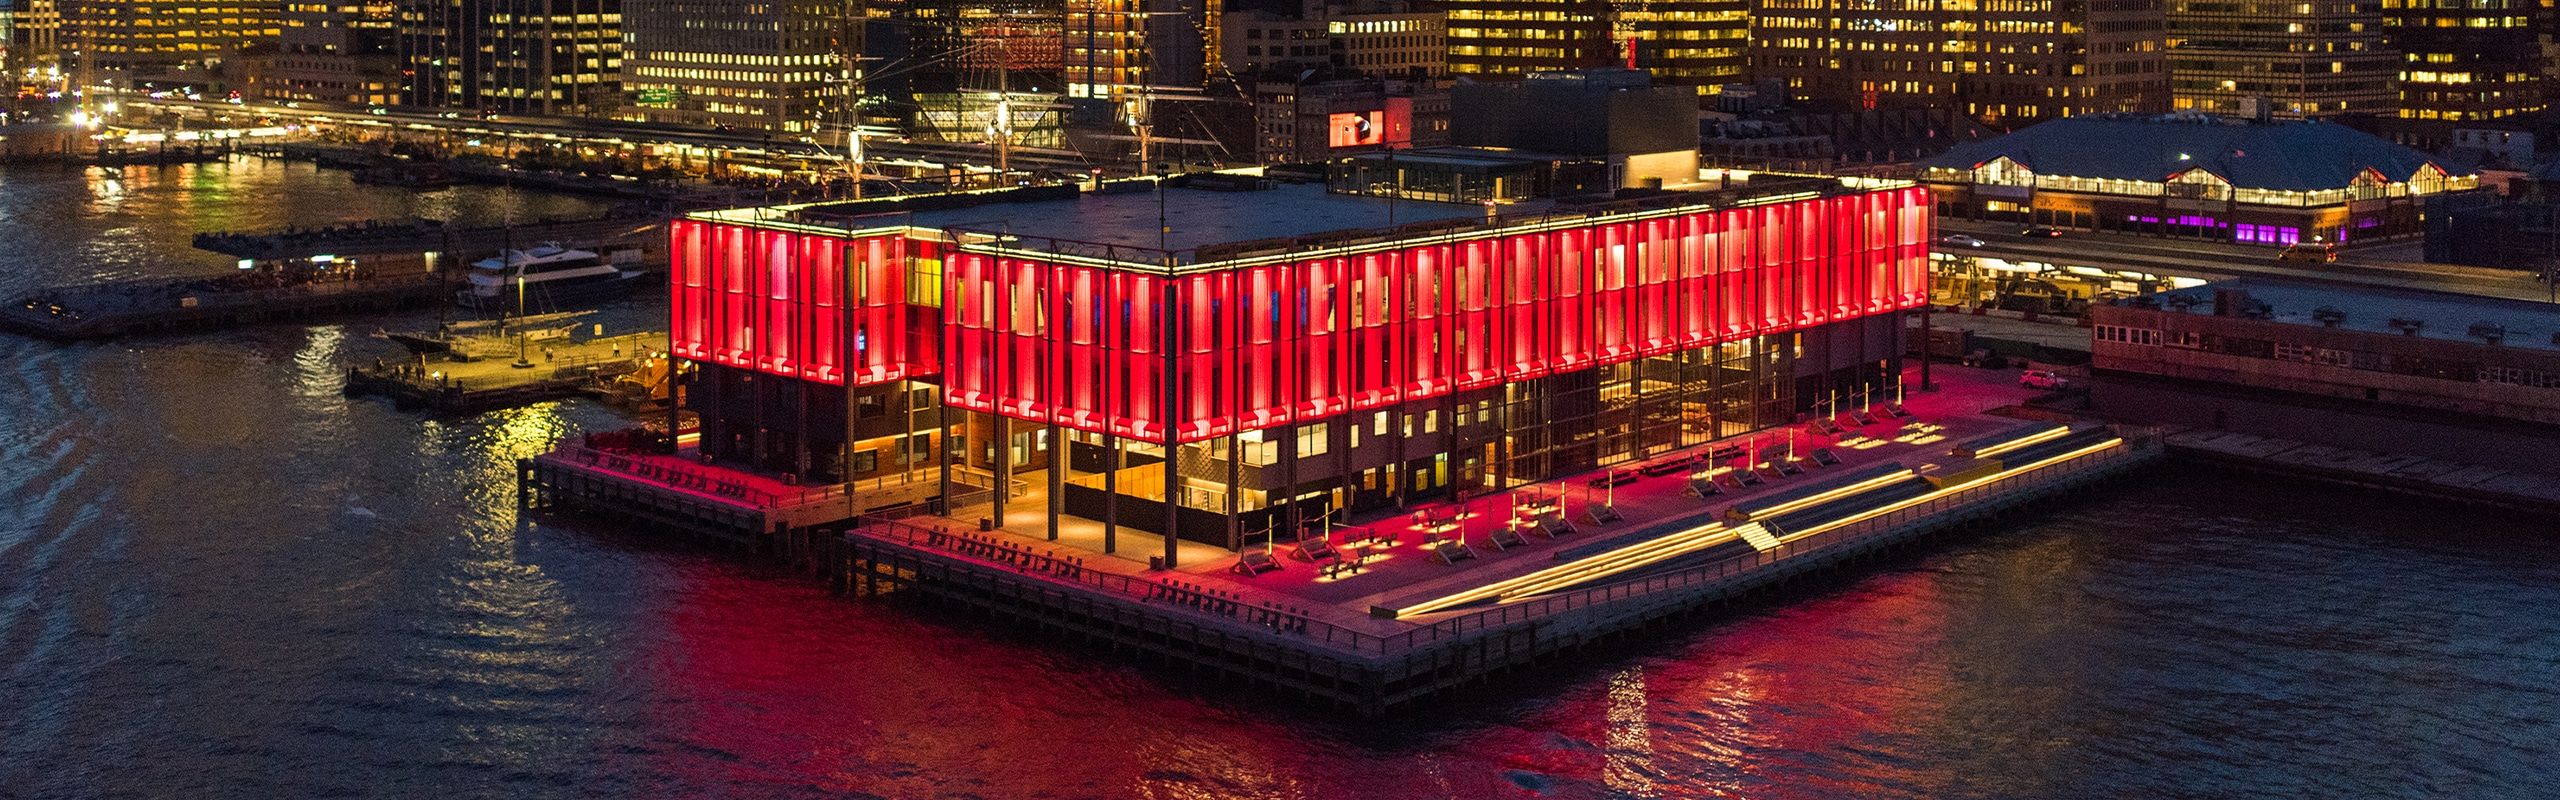 Pier 17 lit up in red lights